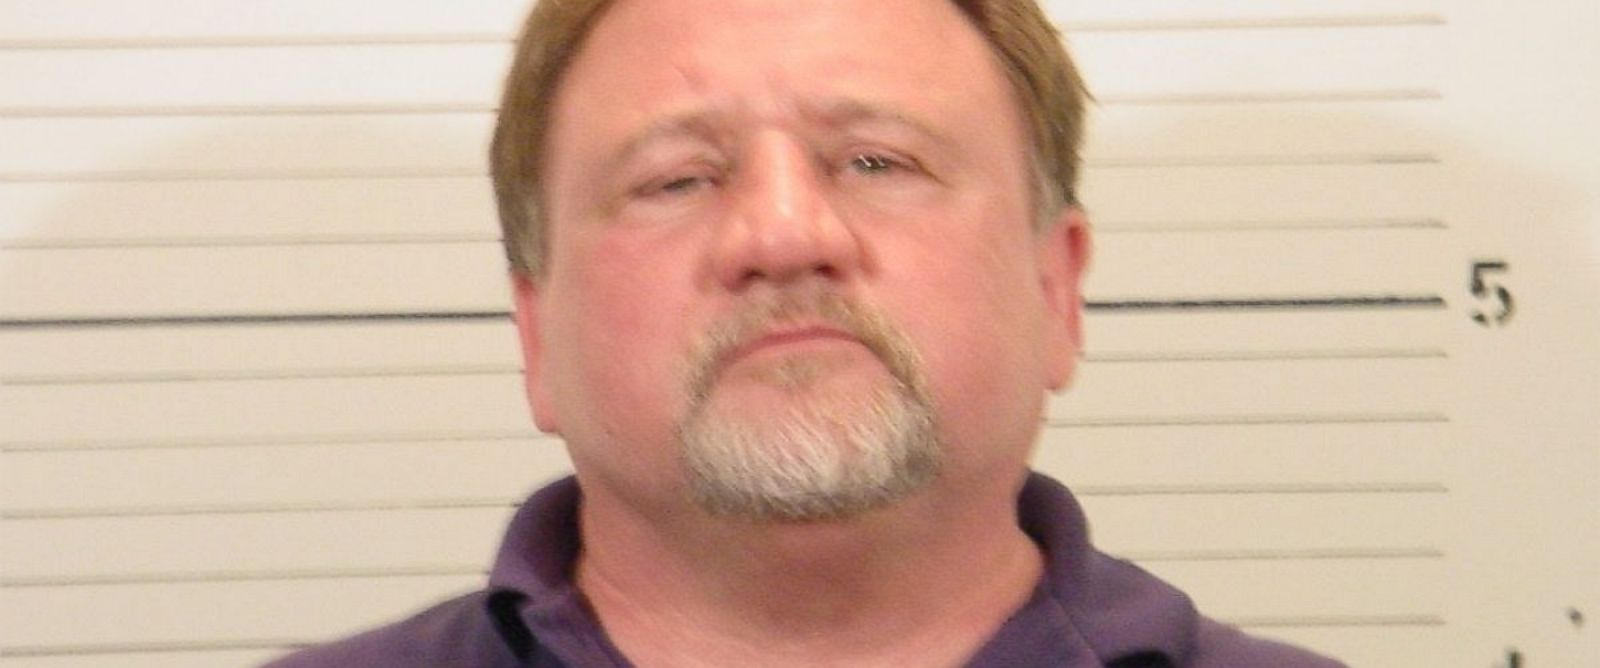 PHOTO: A handout image released by the St Clair County Sheriffs Department shows a booking photo dated Feb. 19, 2007, of James T. Hodgkinson of Belleville, Illinois.